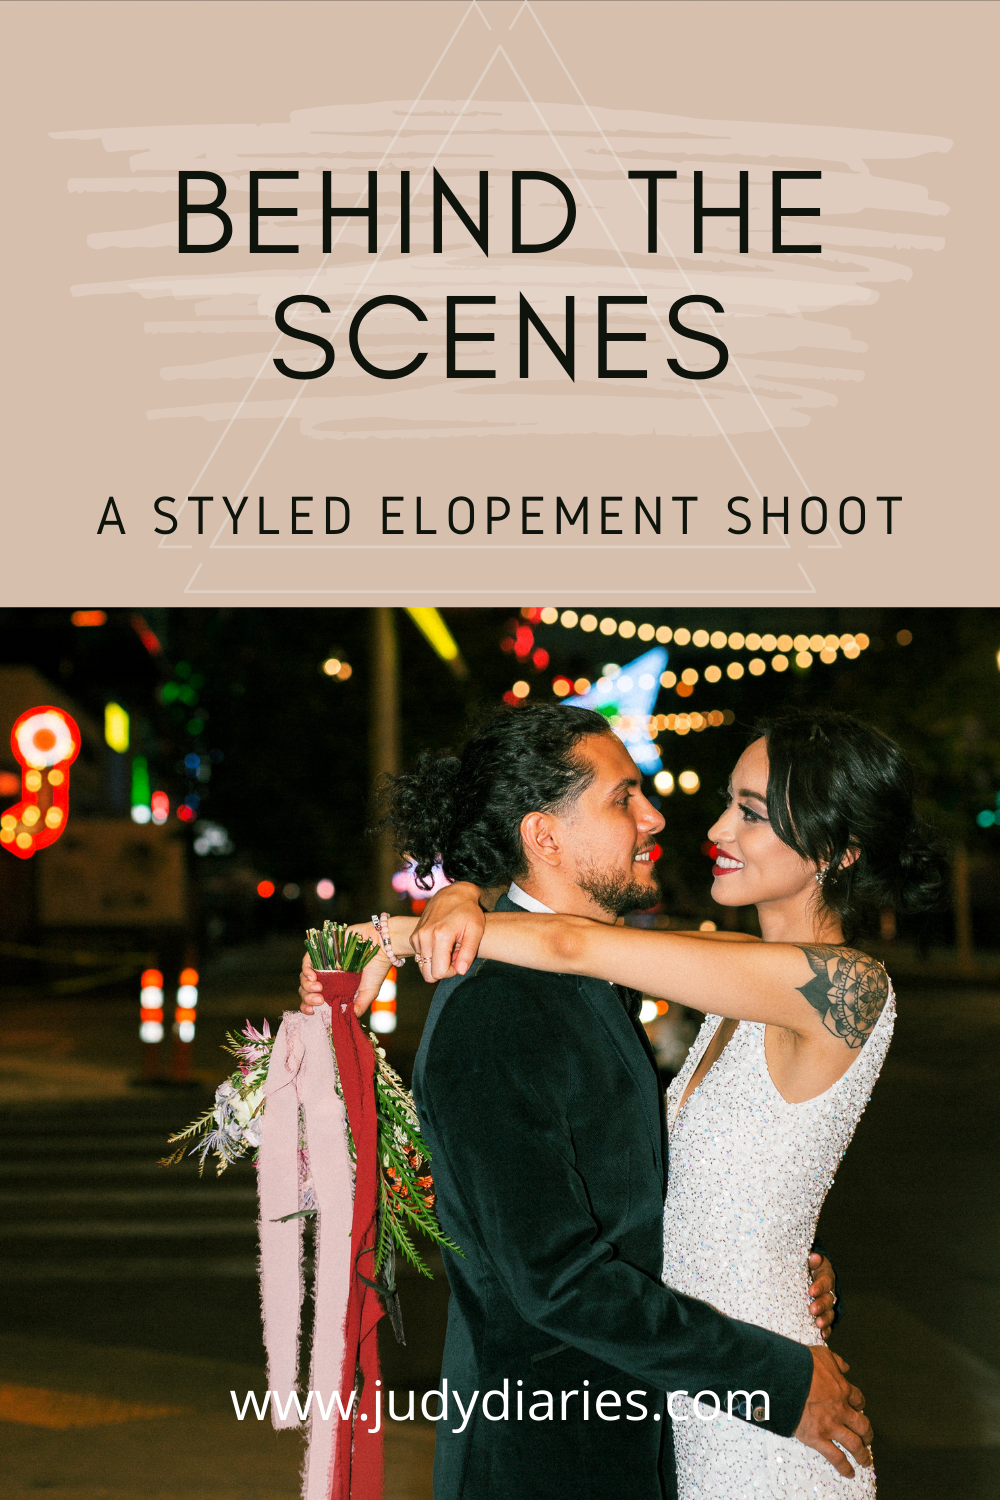 Vegas Elopement Photoshoot Behind the Scenes Wedding Photography